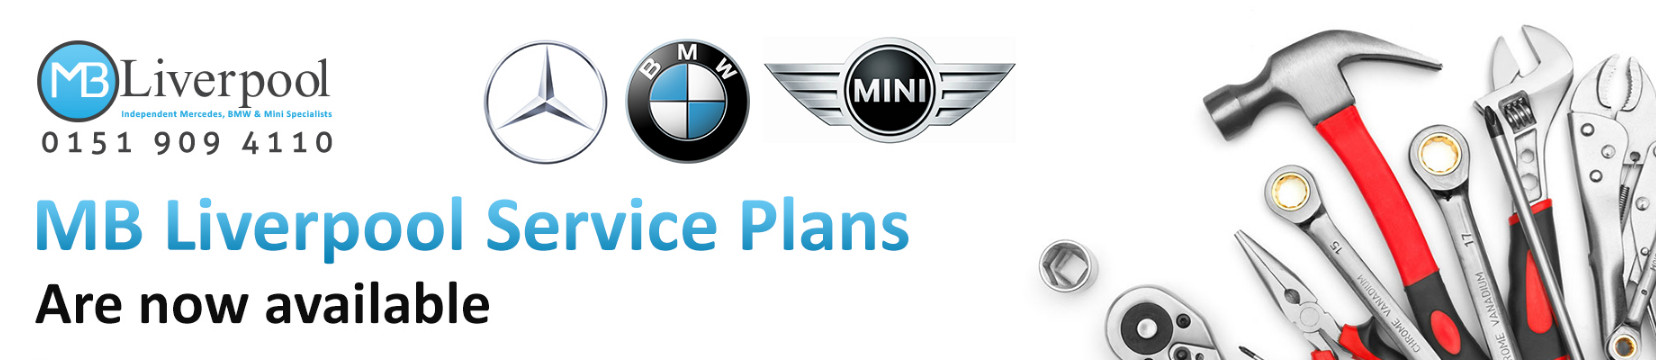 Have You Got A Liverpool Mercedes Service Plan Yet?